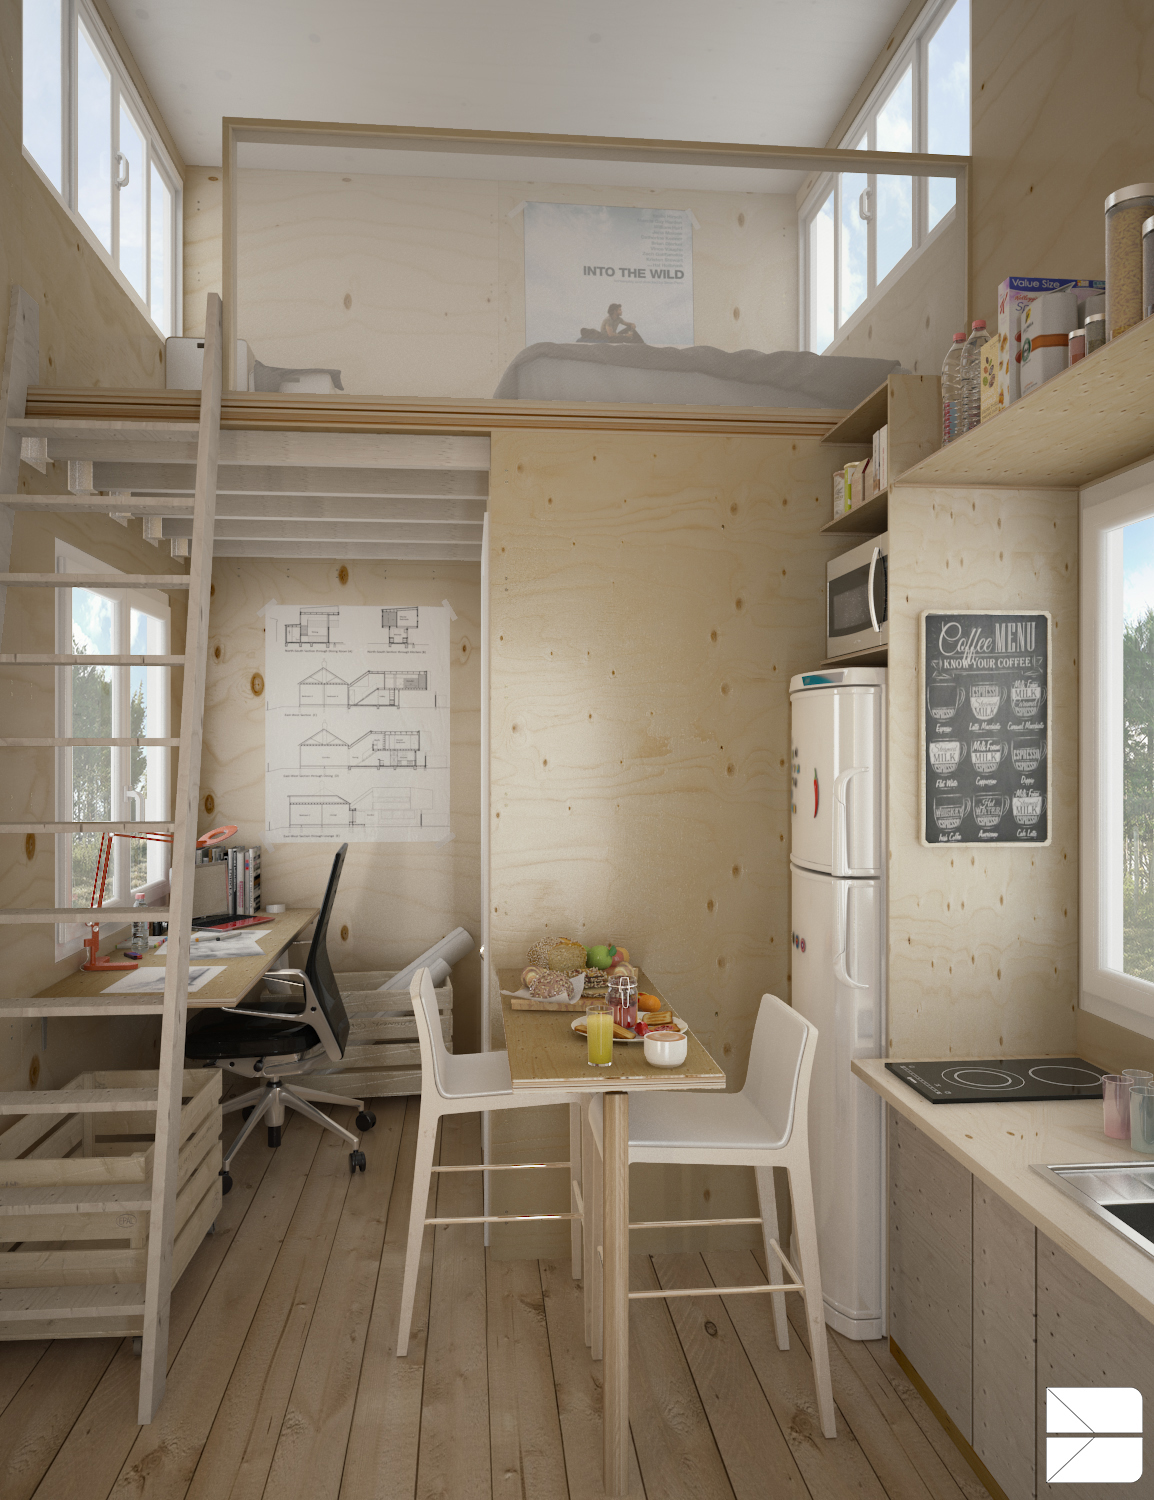 Designing for super small spaces 5 micro apartments for How to design a loft